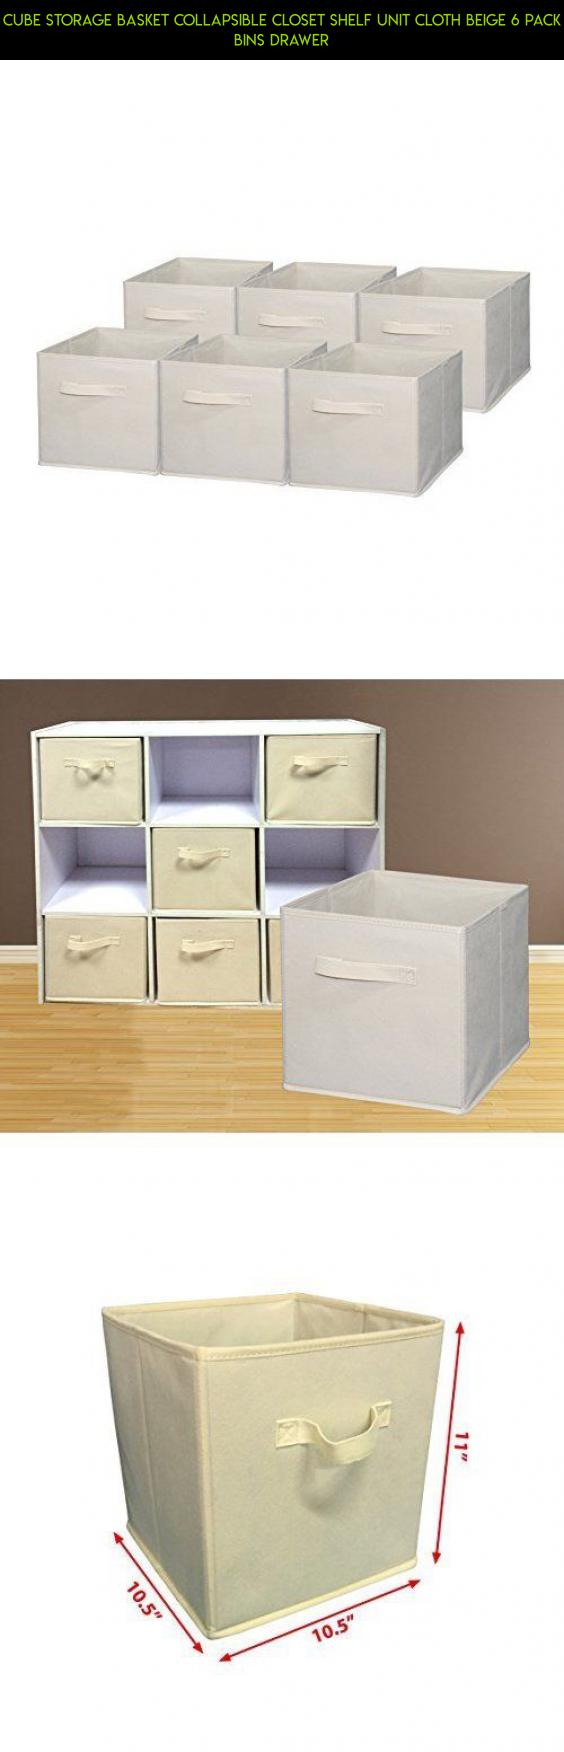 Cube Storage Basket Collapsible Closet Shelf Unit Cloth Beige 6 Pack Bins Drawer